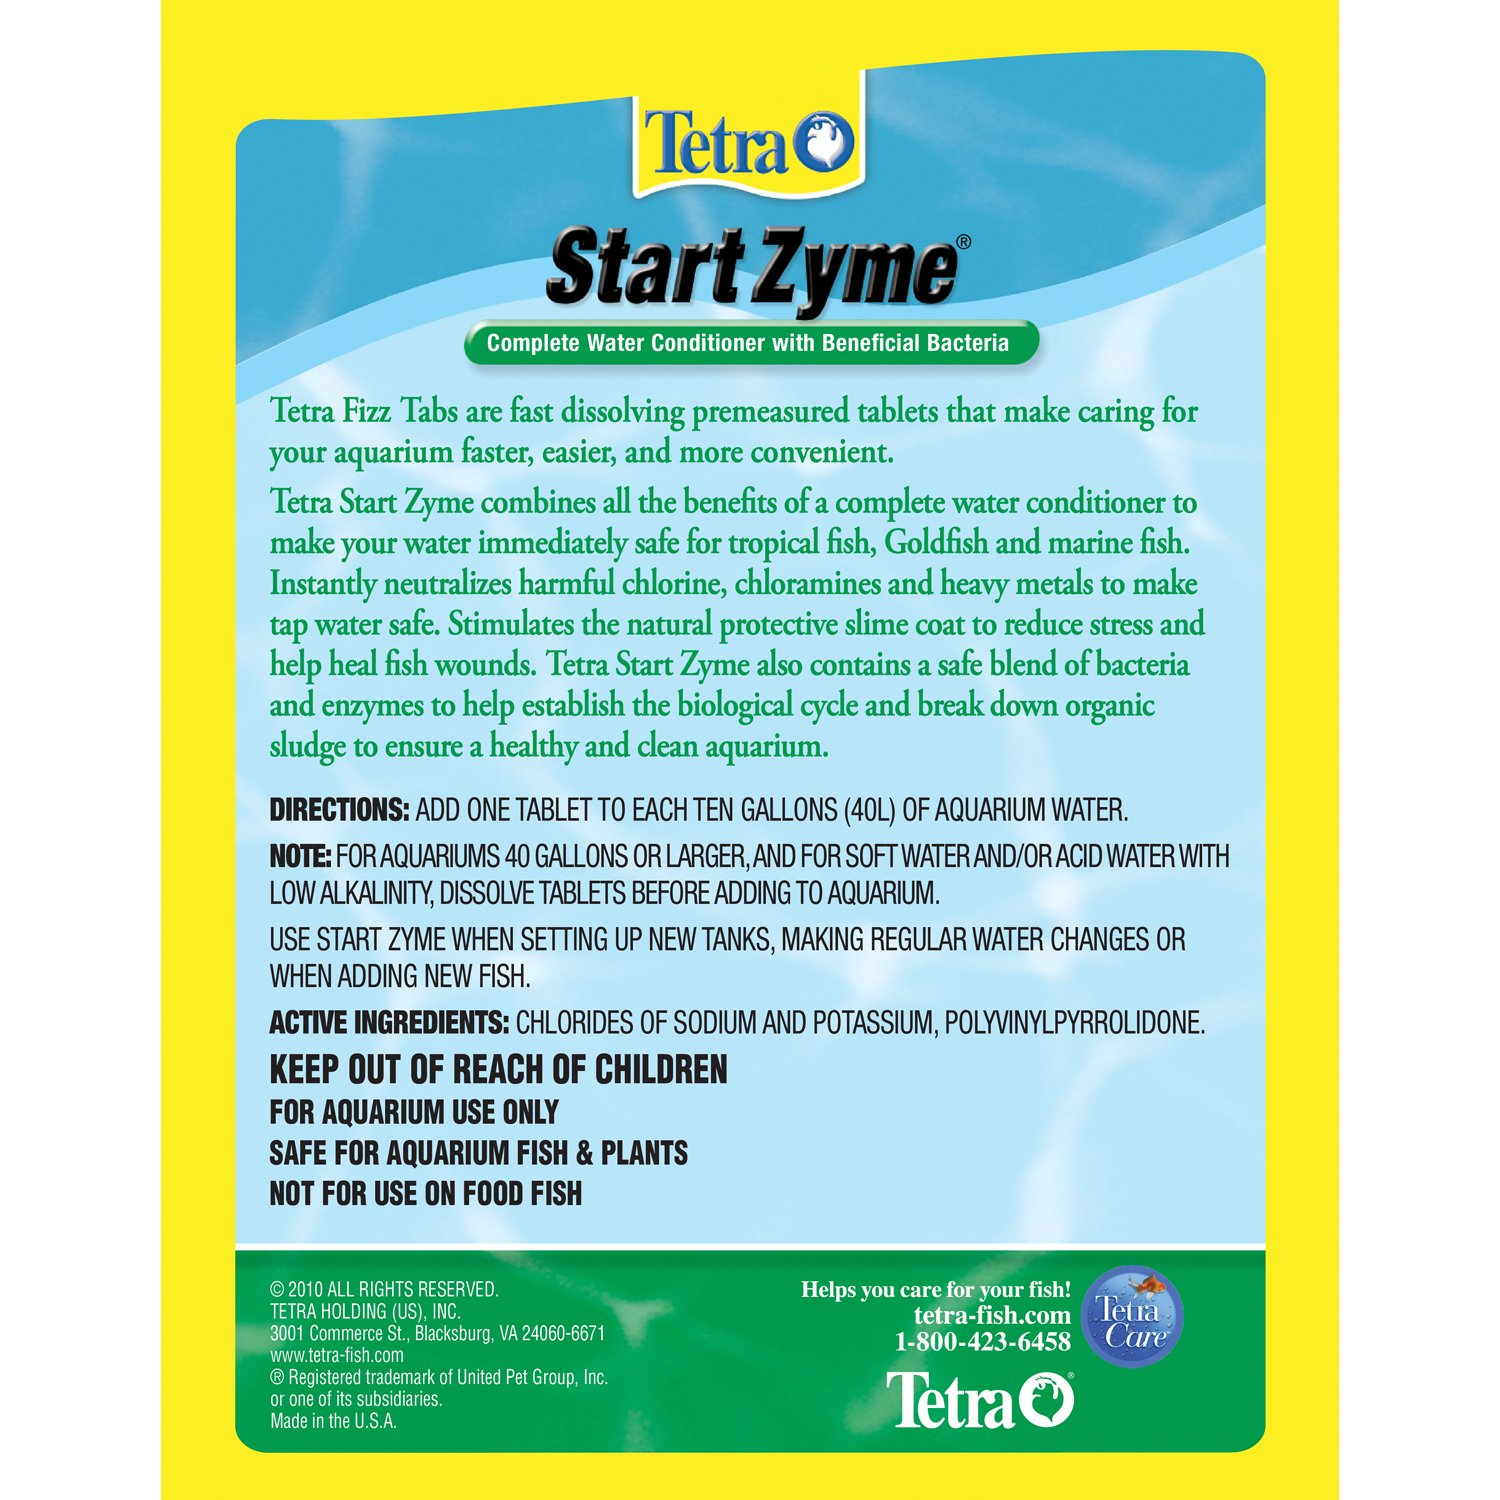 Amazon.com: Tetra 77343 startzyme Tablets, 3 paquetes: Mascotas